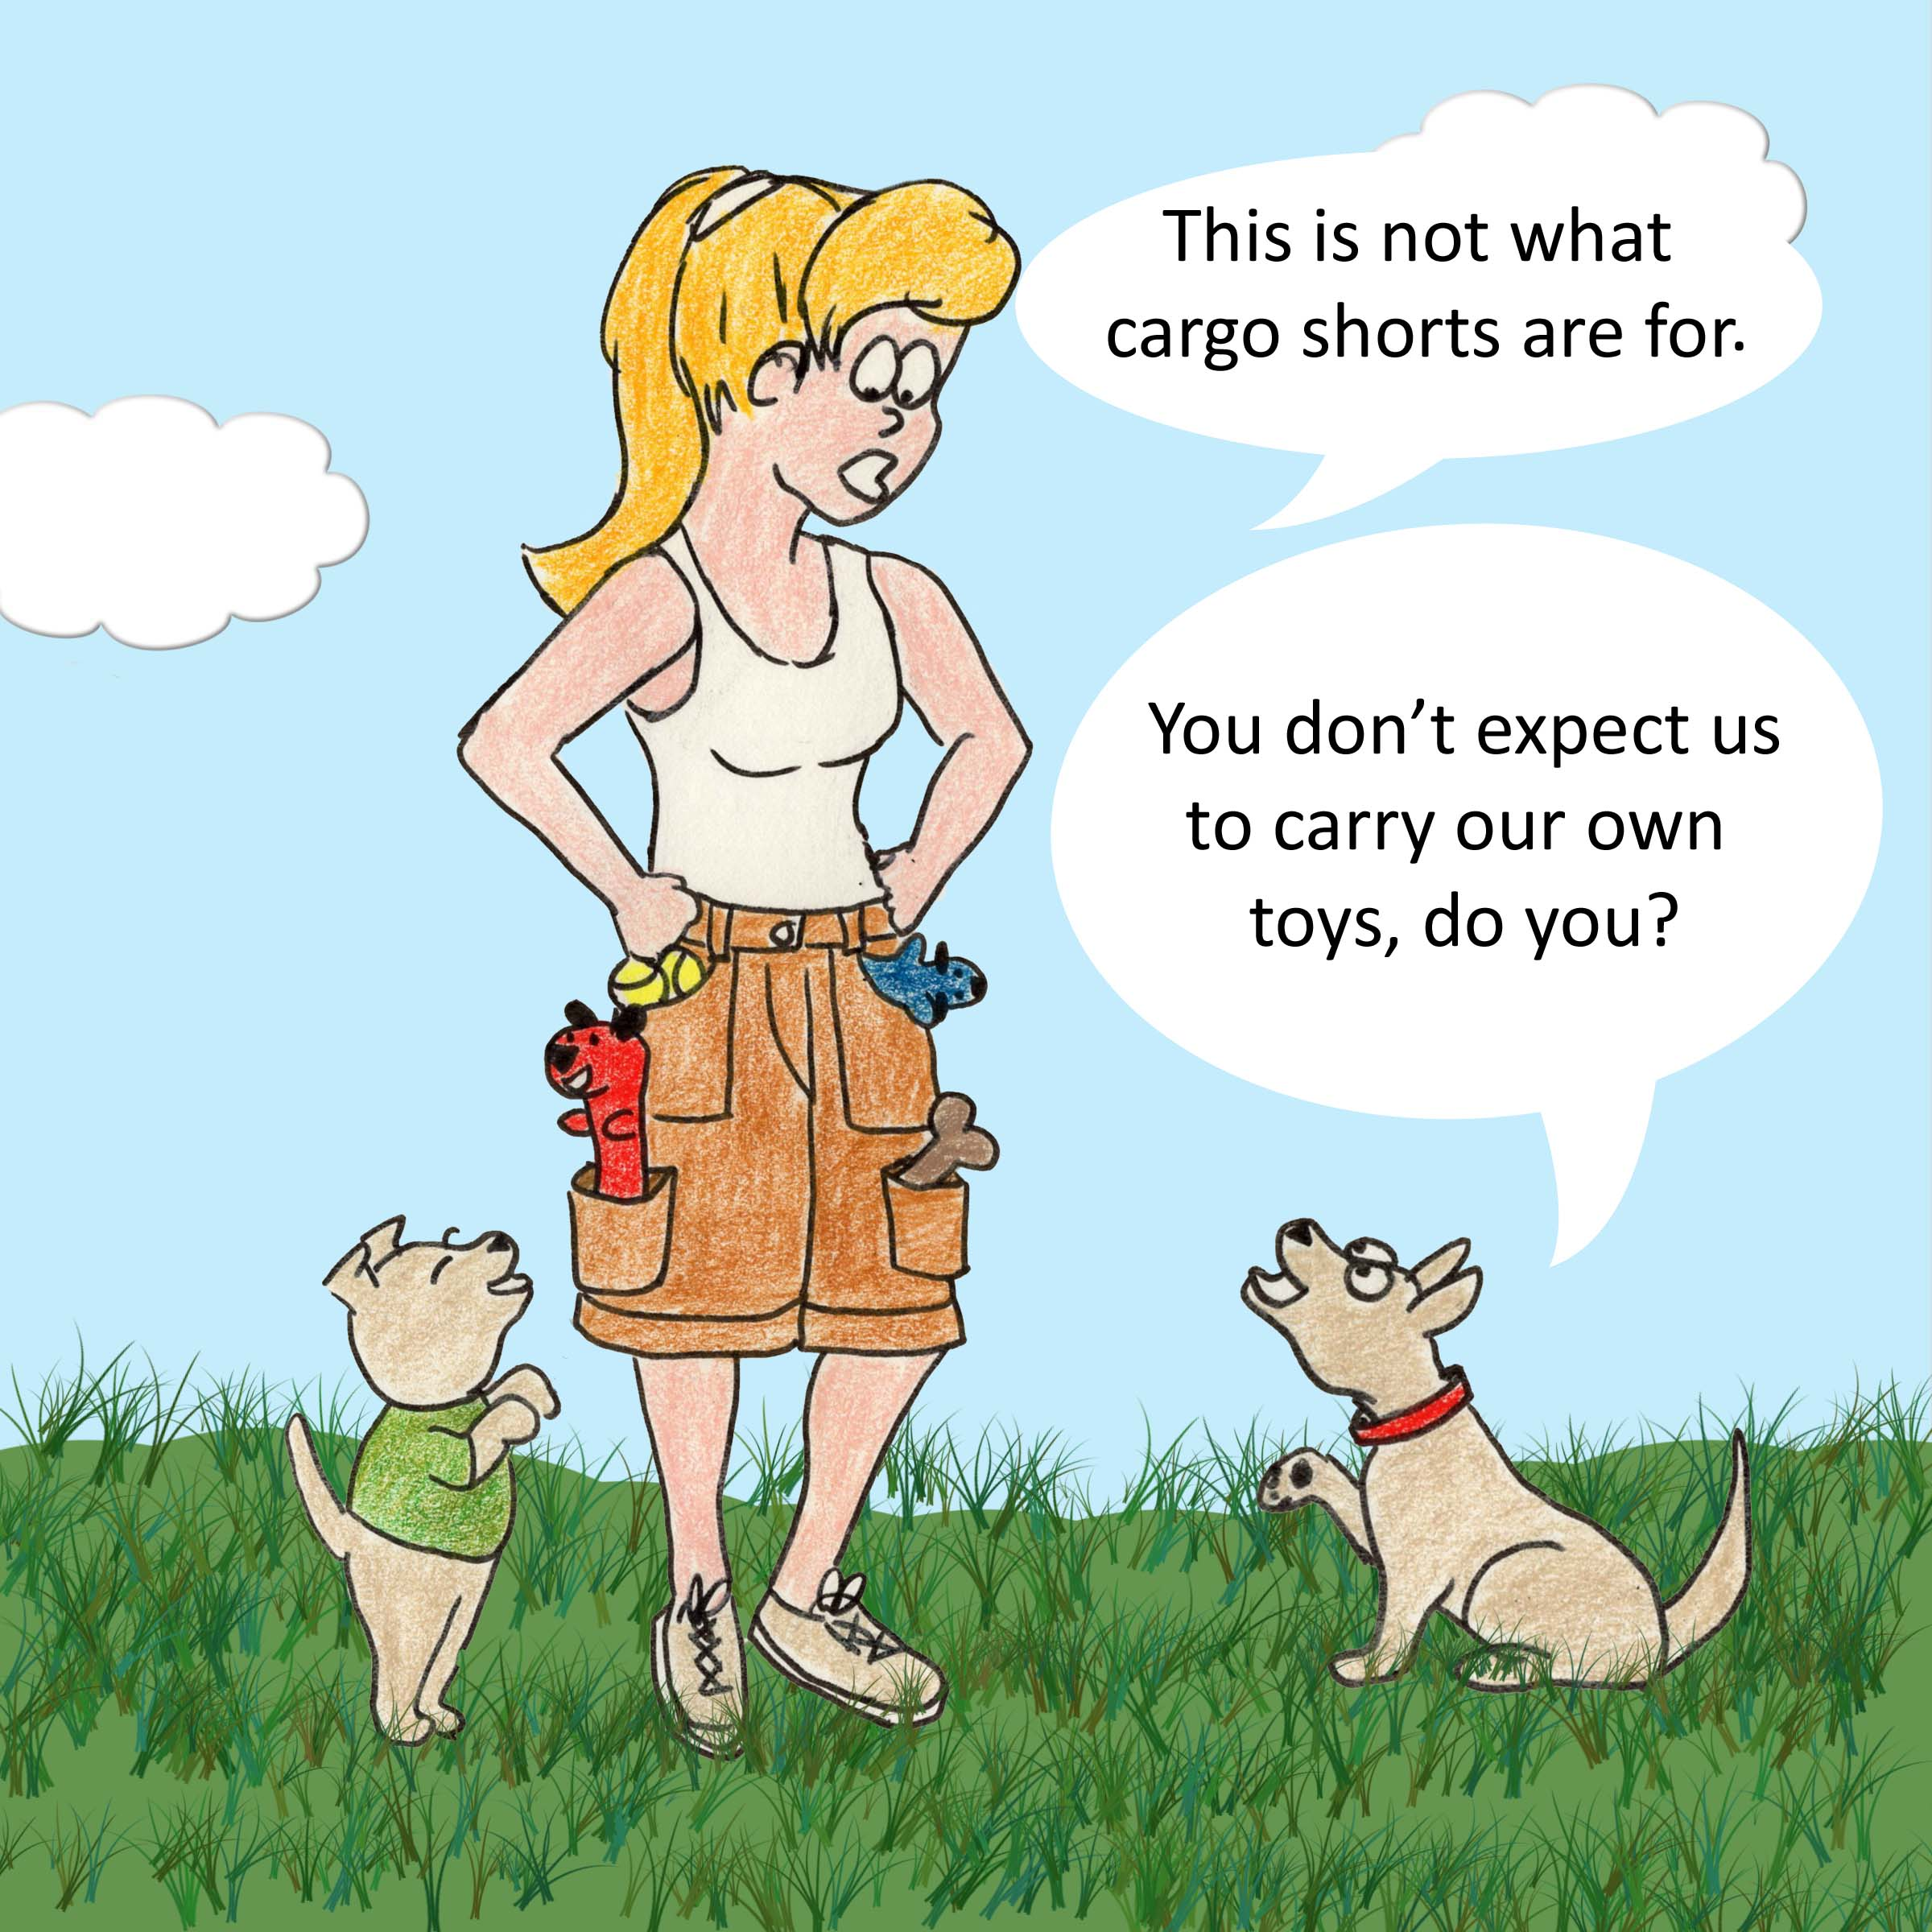 This is not what cargo shorts are for. You don't expect us to carry our own toys, do you?